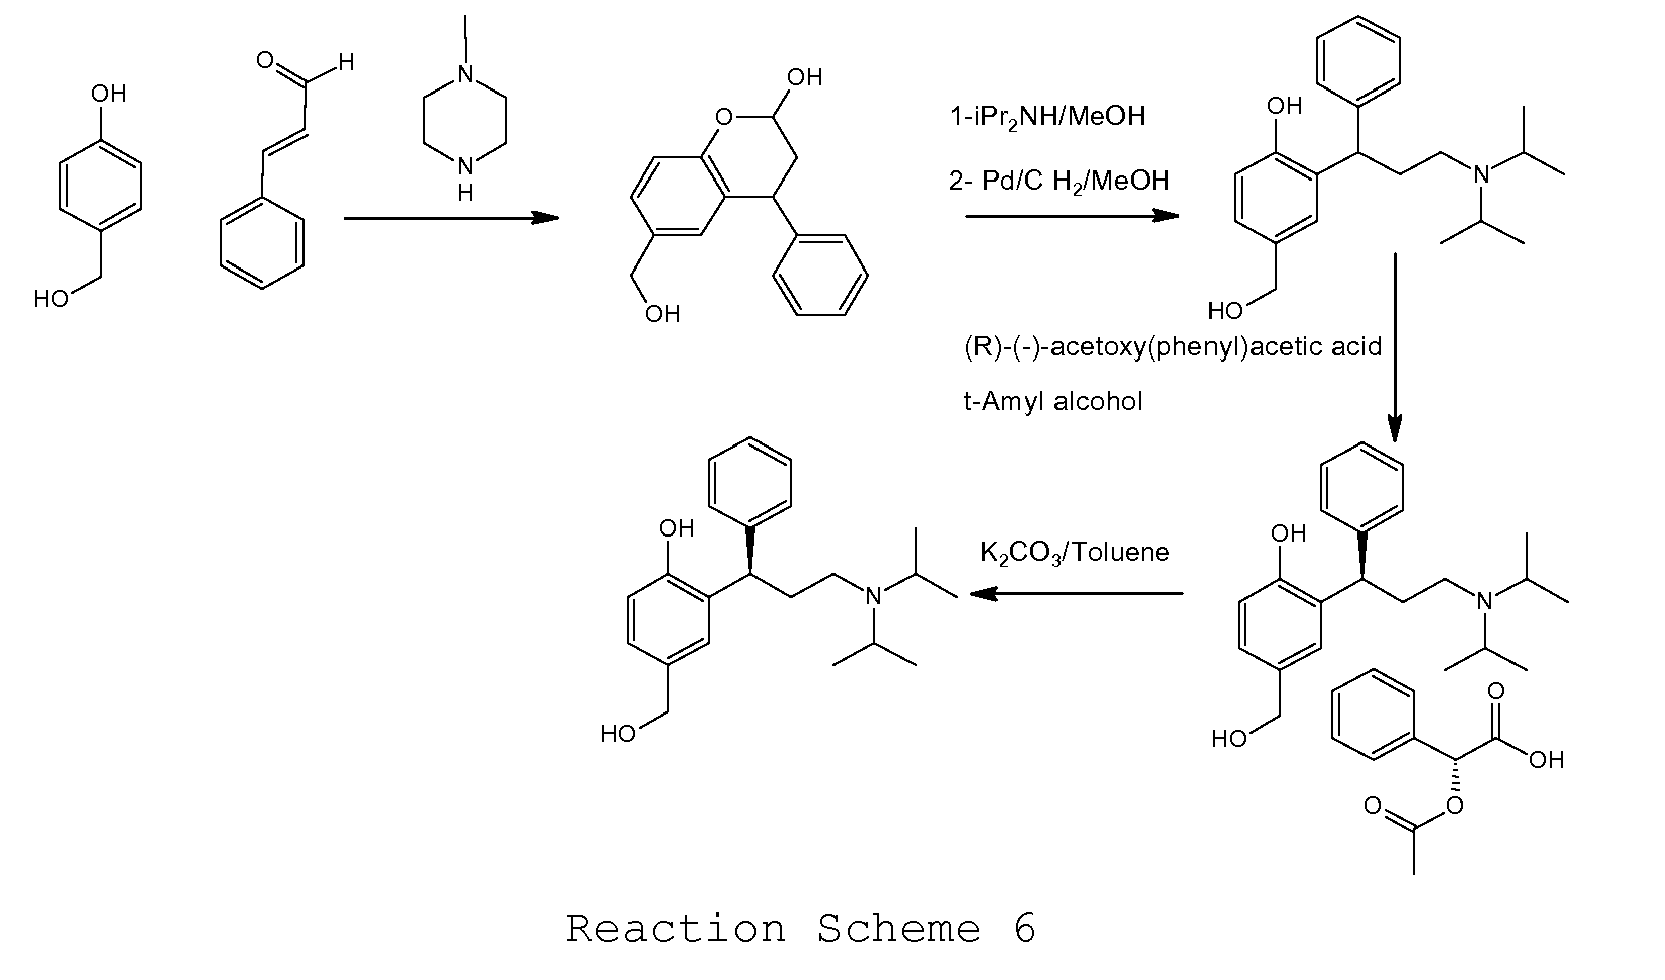 Process for obtaining 3,3-diphenylpropylamines - Patent 2281801